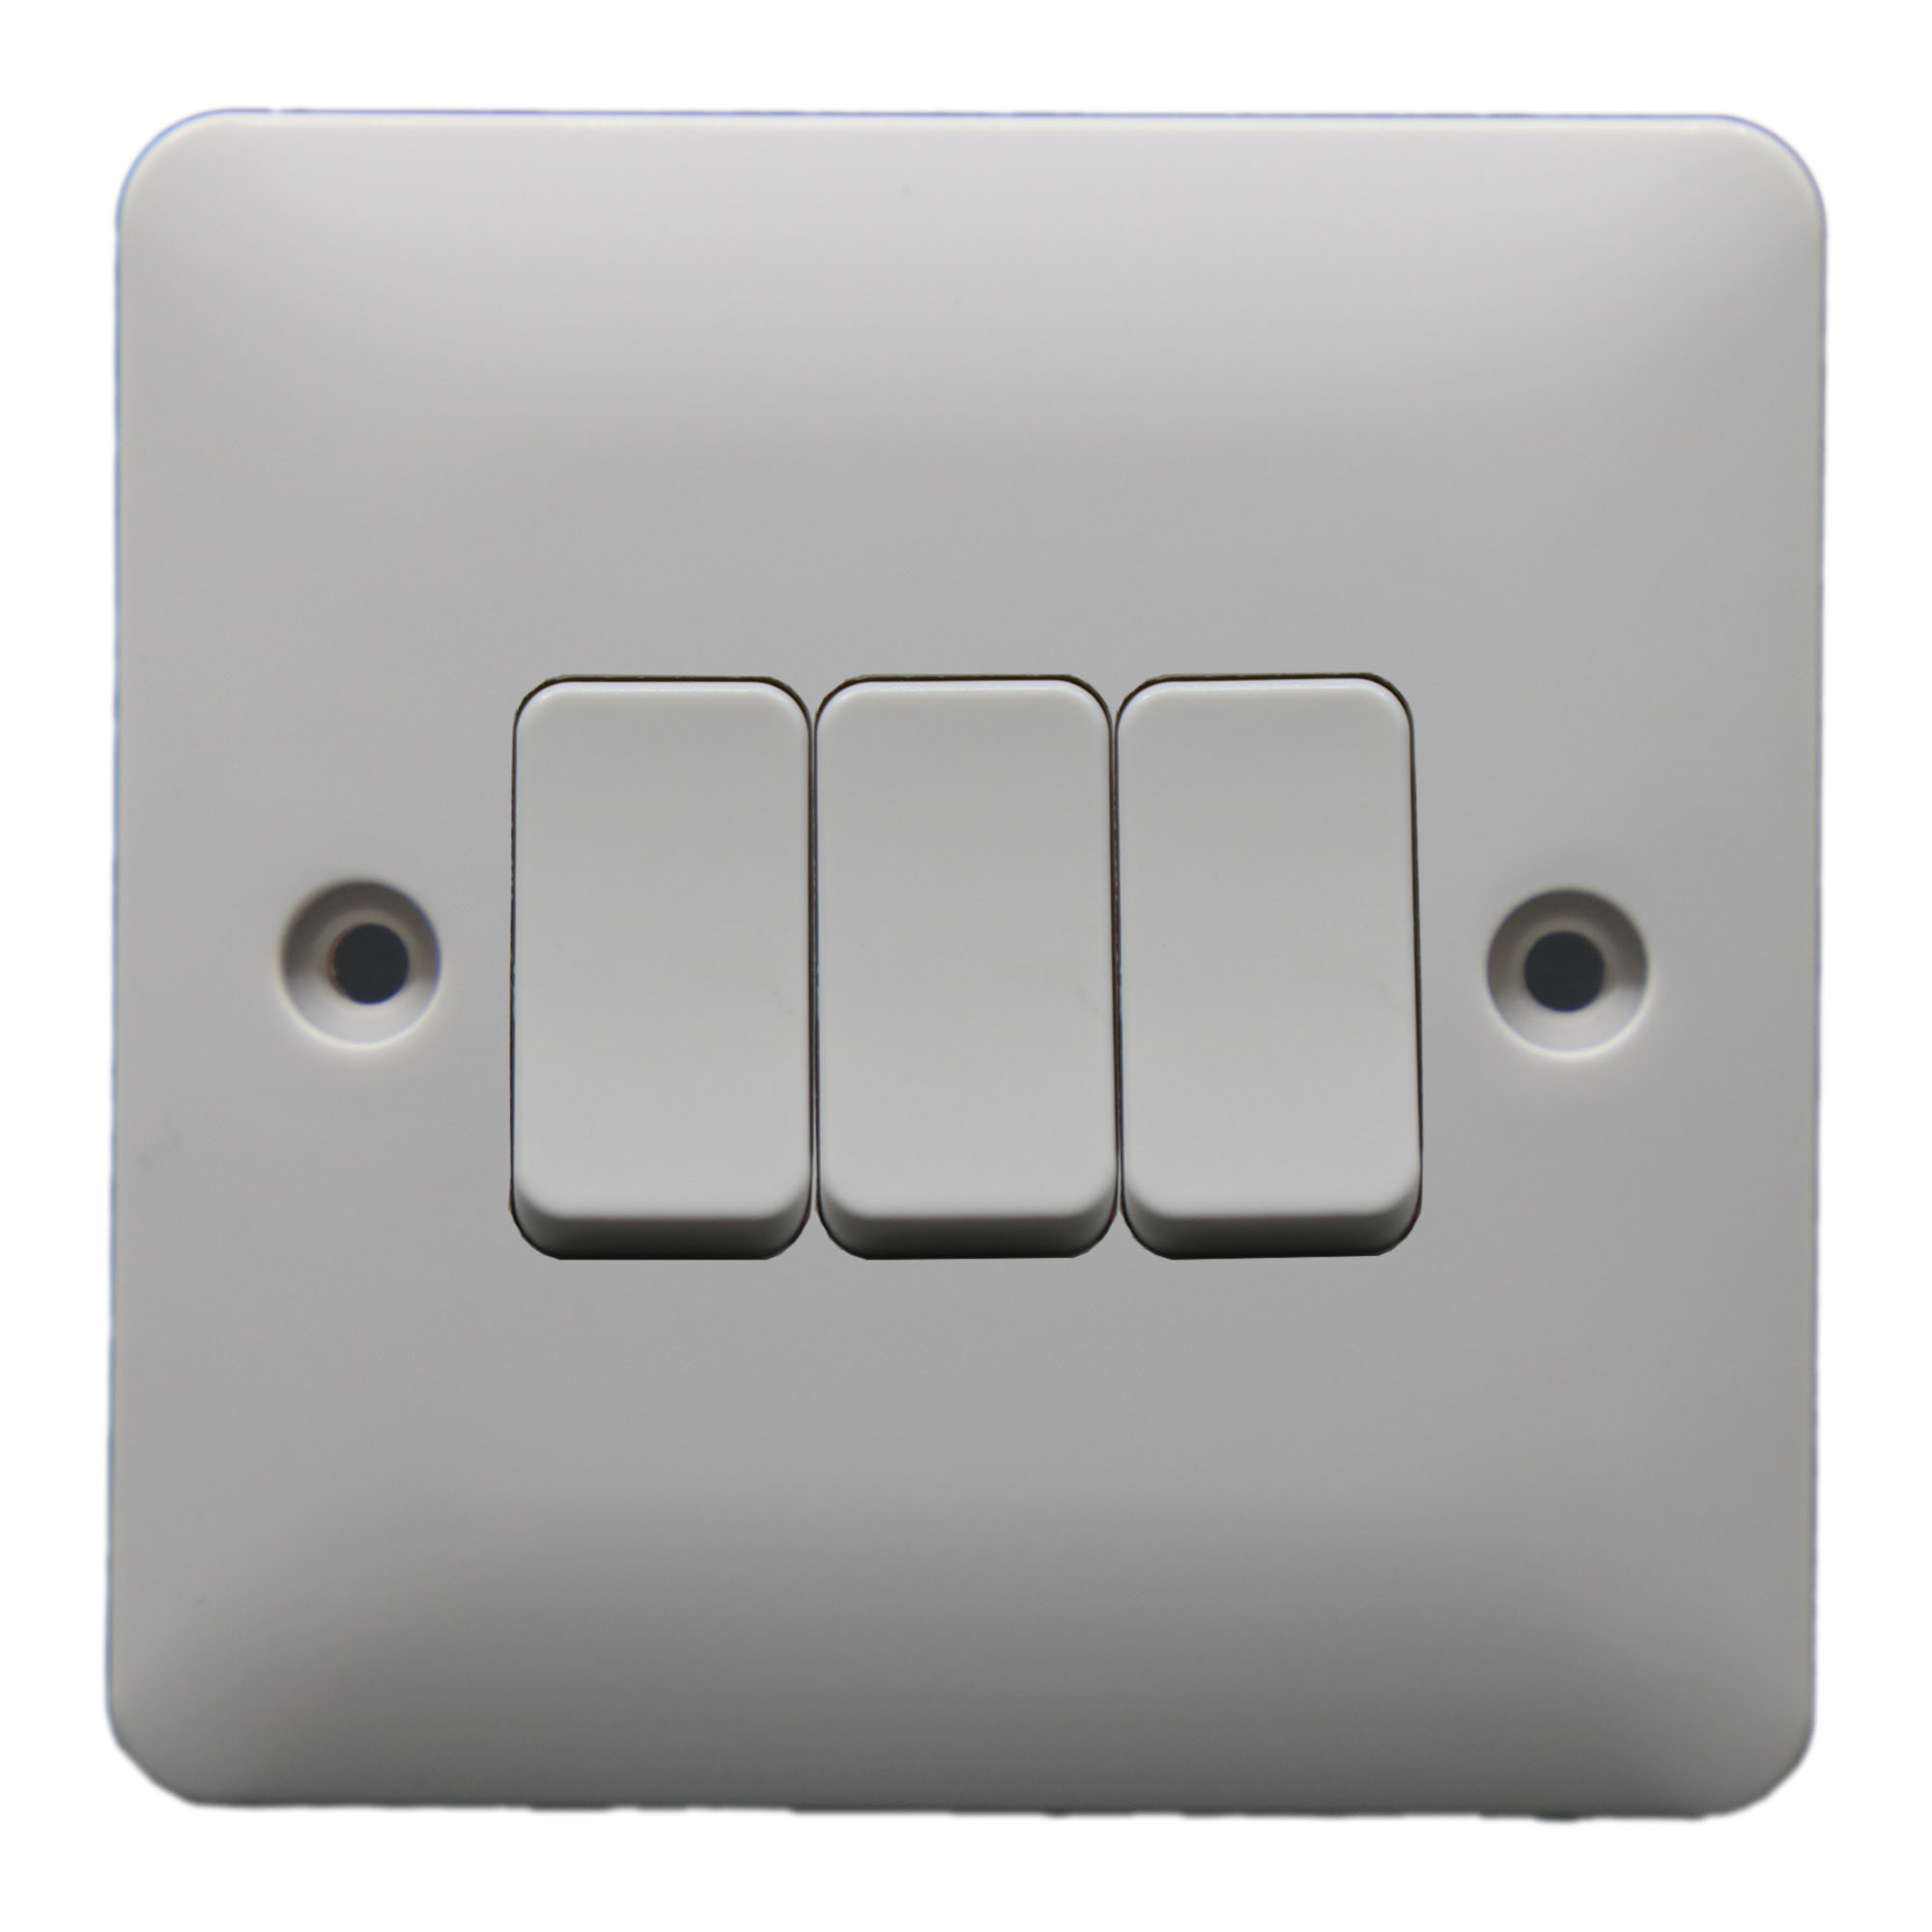 Zn306 10a Uk 3 Gang 2 Way Electric Wall Light Switches